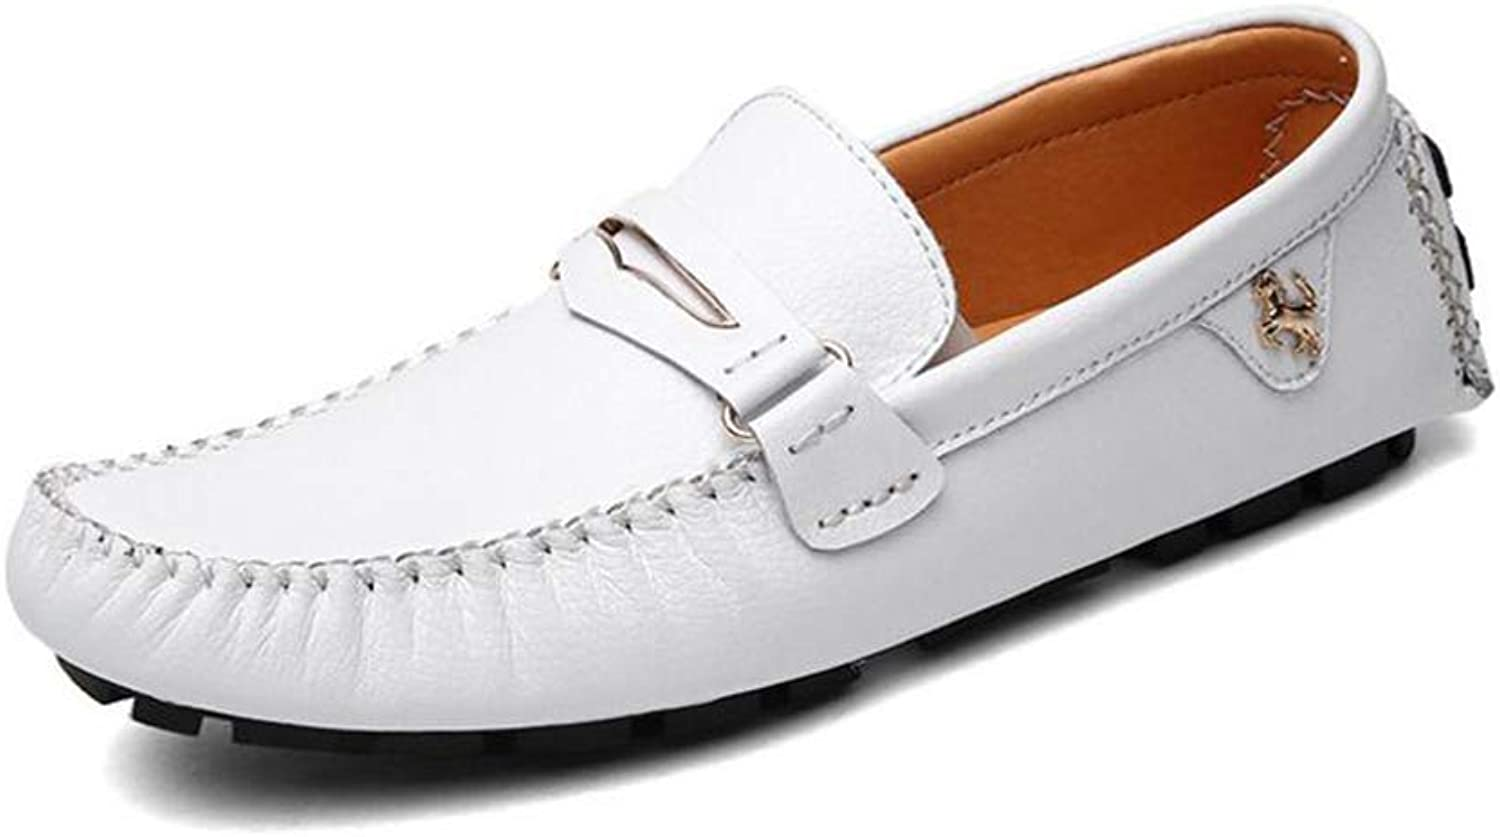 Y-H Men Casual shoes,Spring New Loafers & Slip-Ons Lazy shoes,Comfort Driving shoes, Walking Gym shoes,White,39